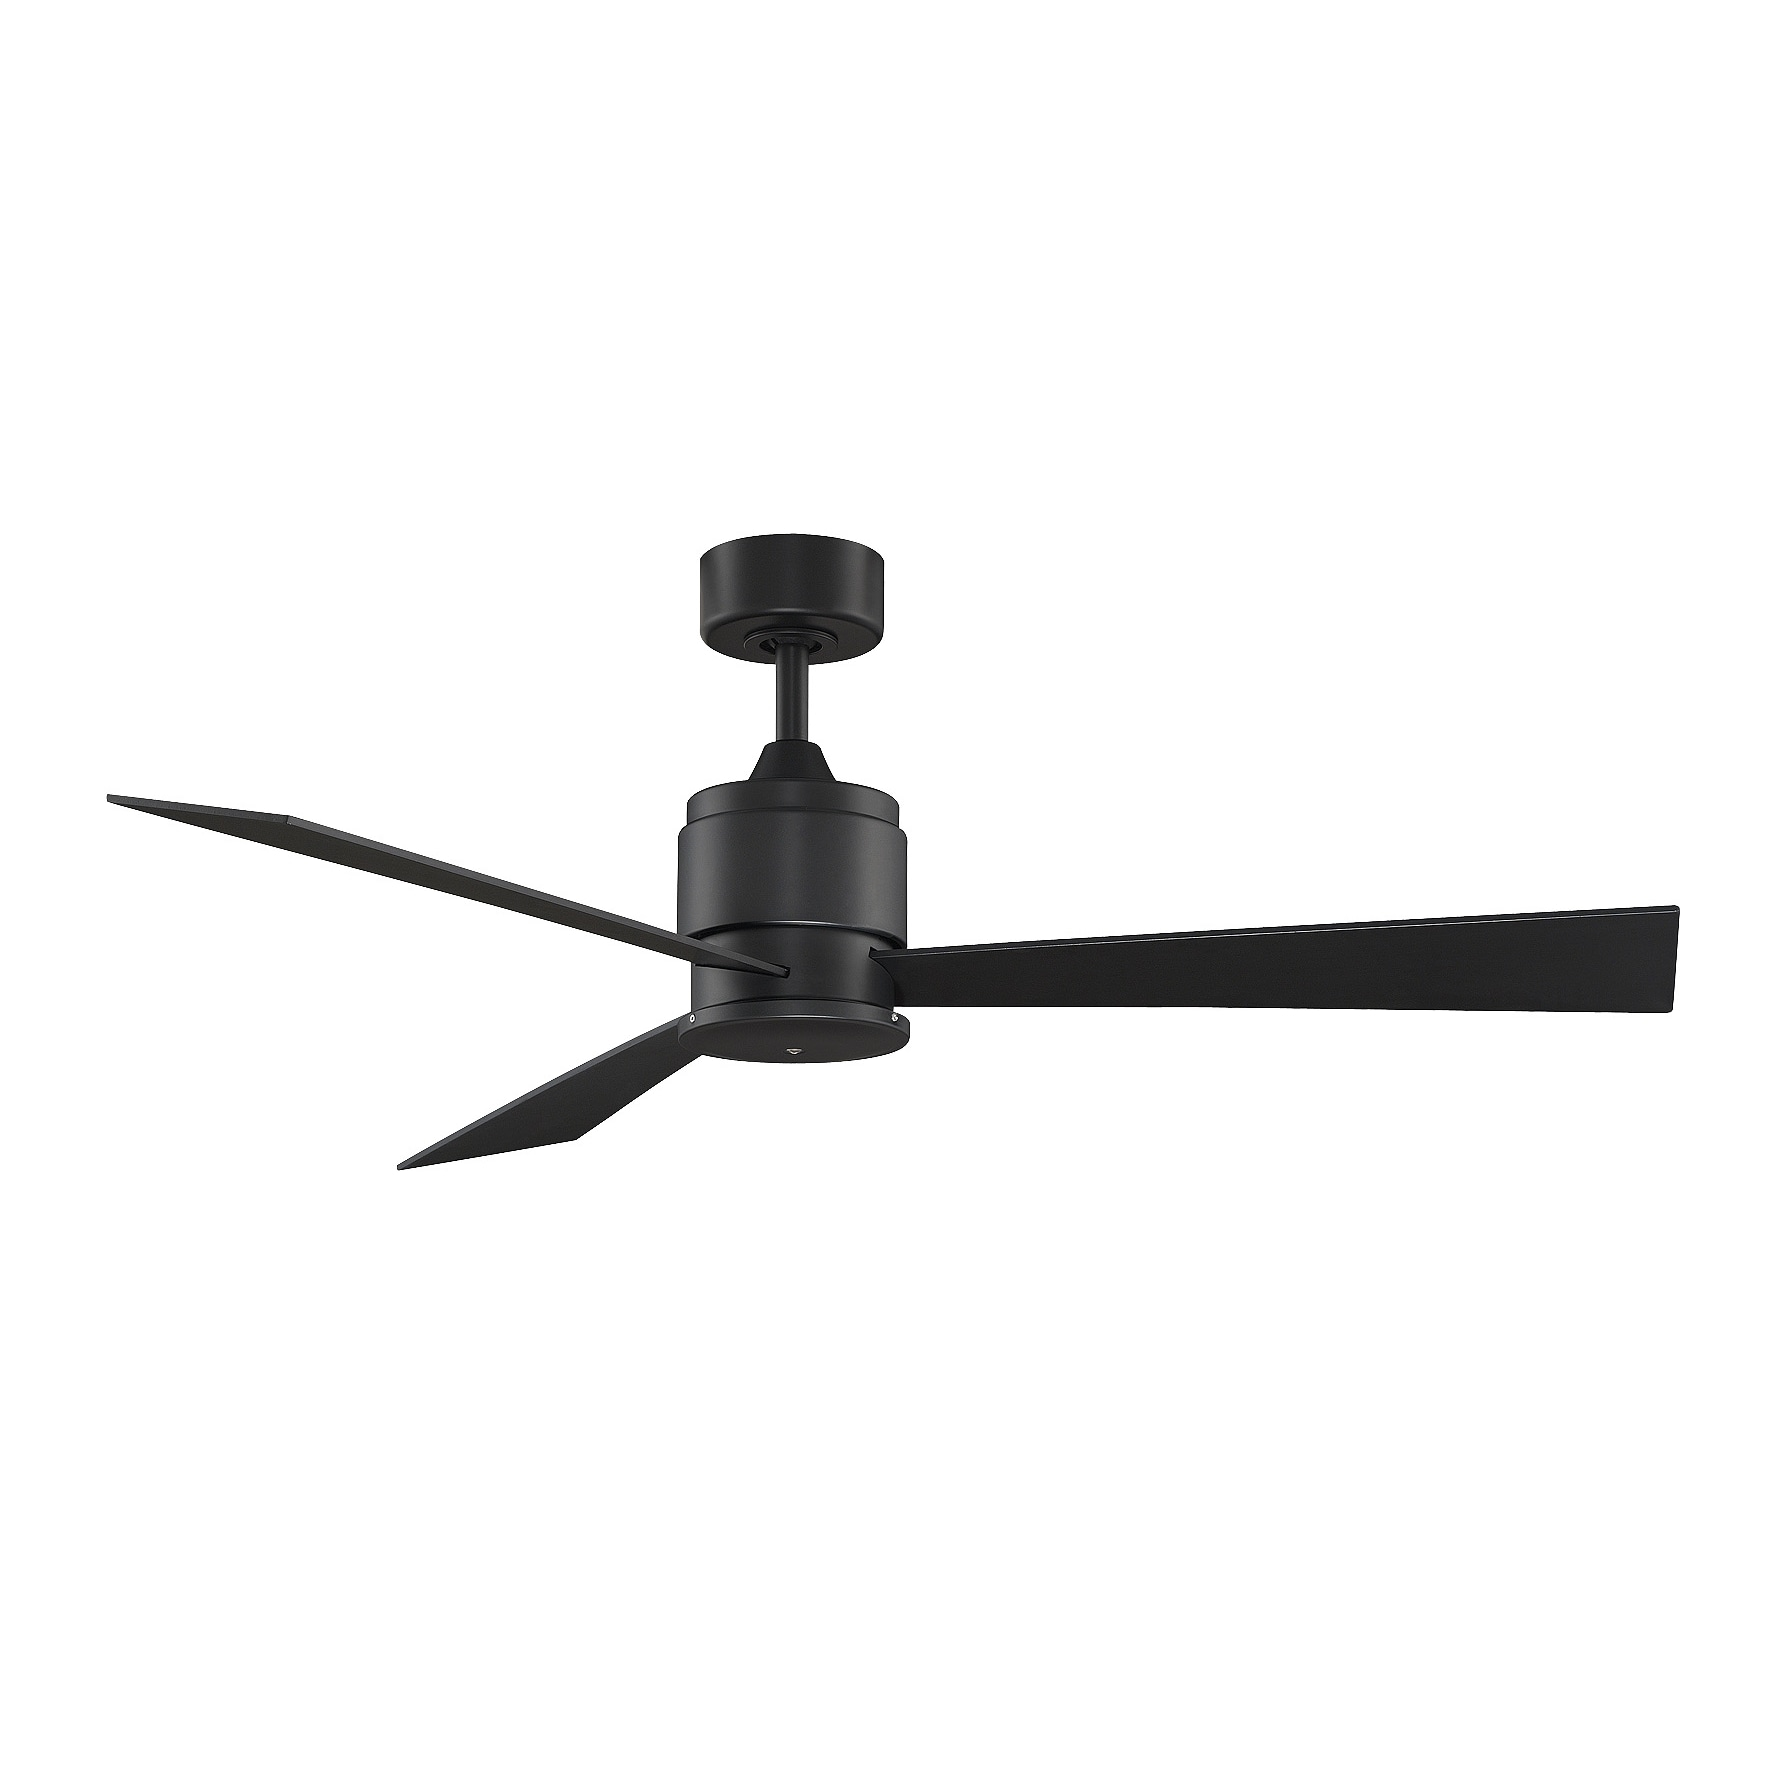 Fanimation Zonix 54 inch Black Ceiling Fan Free Shipping Today